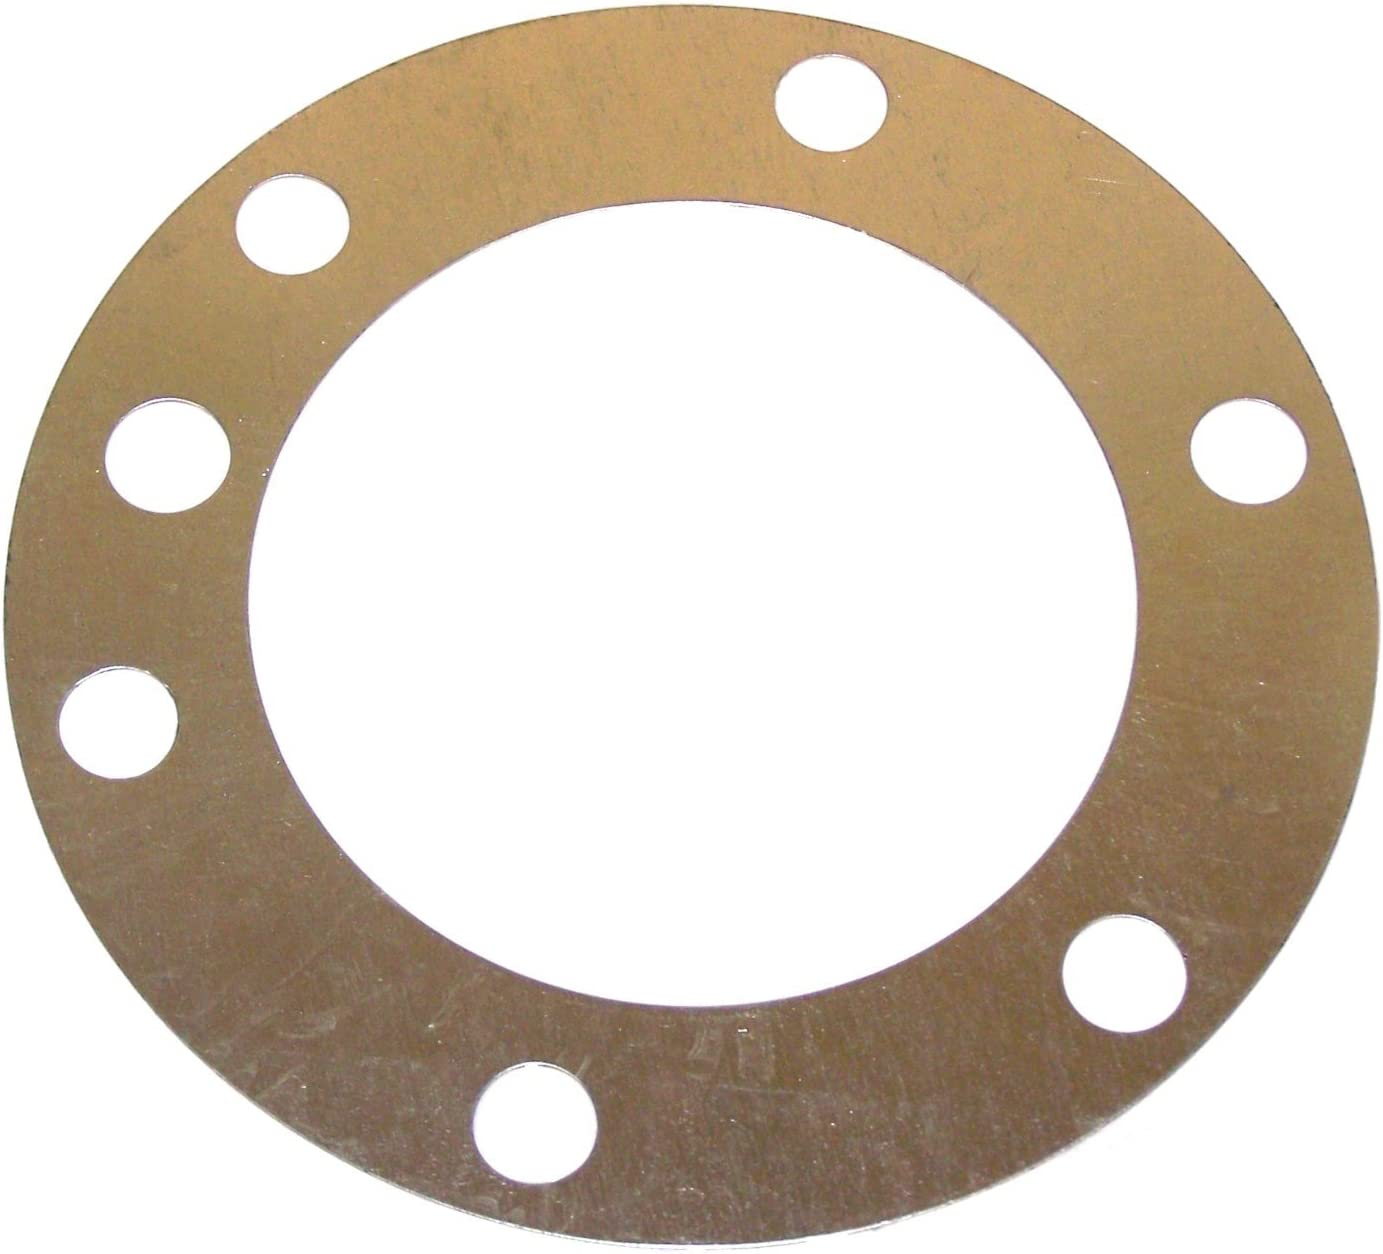 Crown Ranking integrated 1st place Automotive Axle Shaft Bearing Axles and Driveline Set Shim safety